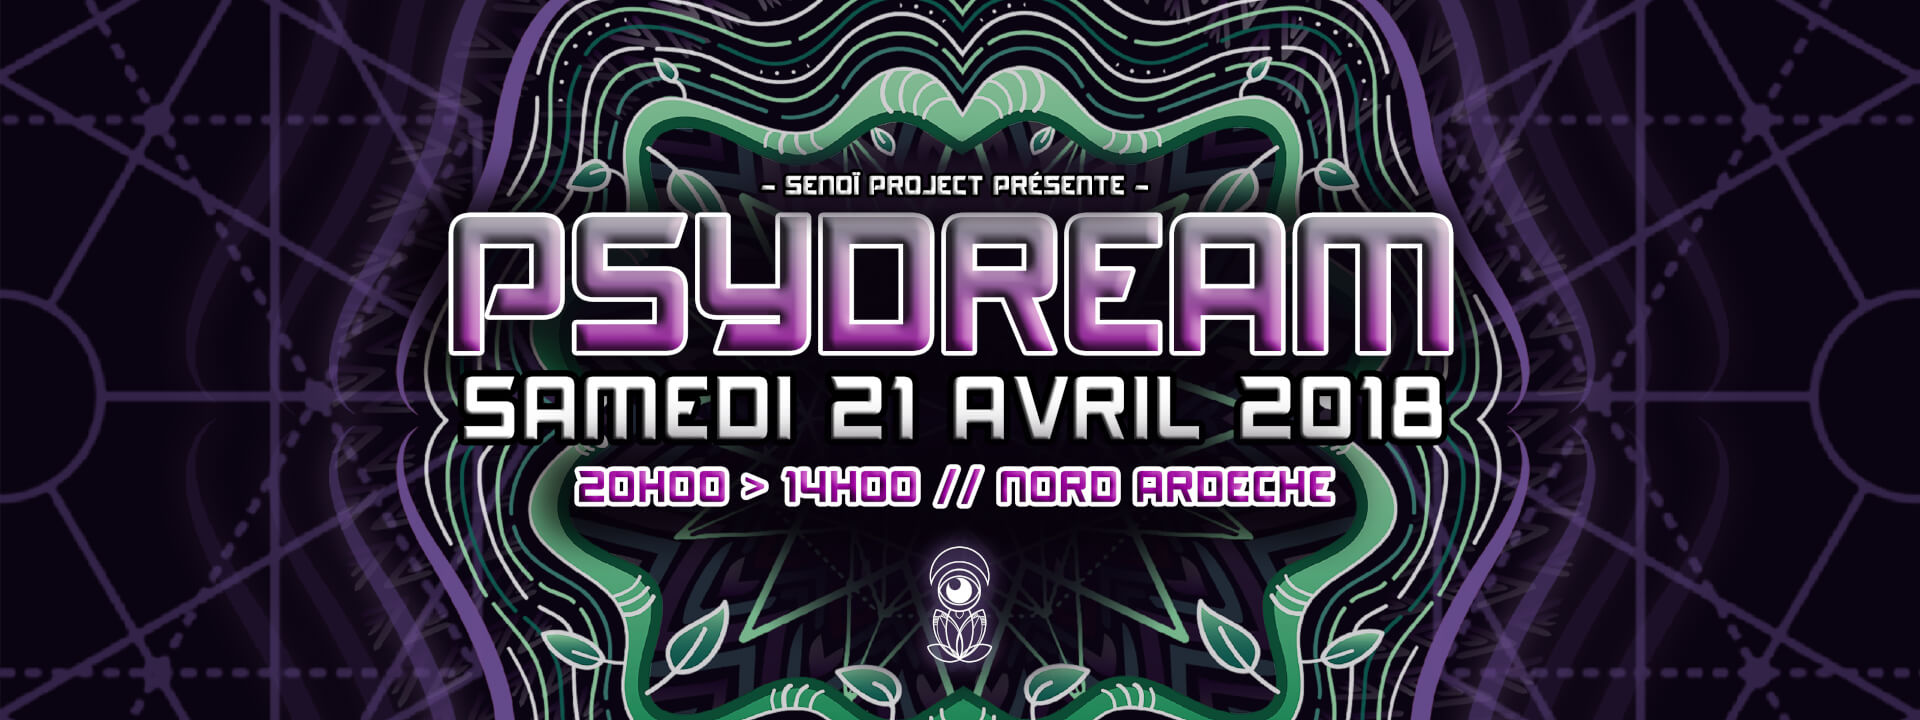 ► PSYDREAM – PSYCHEDELIC INDOOR PARTY SAMEDI 21 AVRIL 2018 – SAINT VICTOR (07)